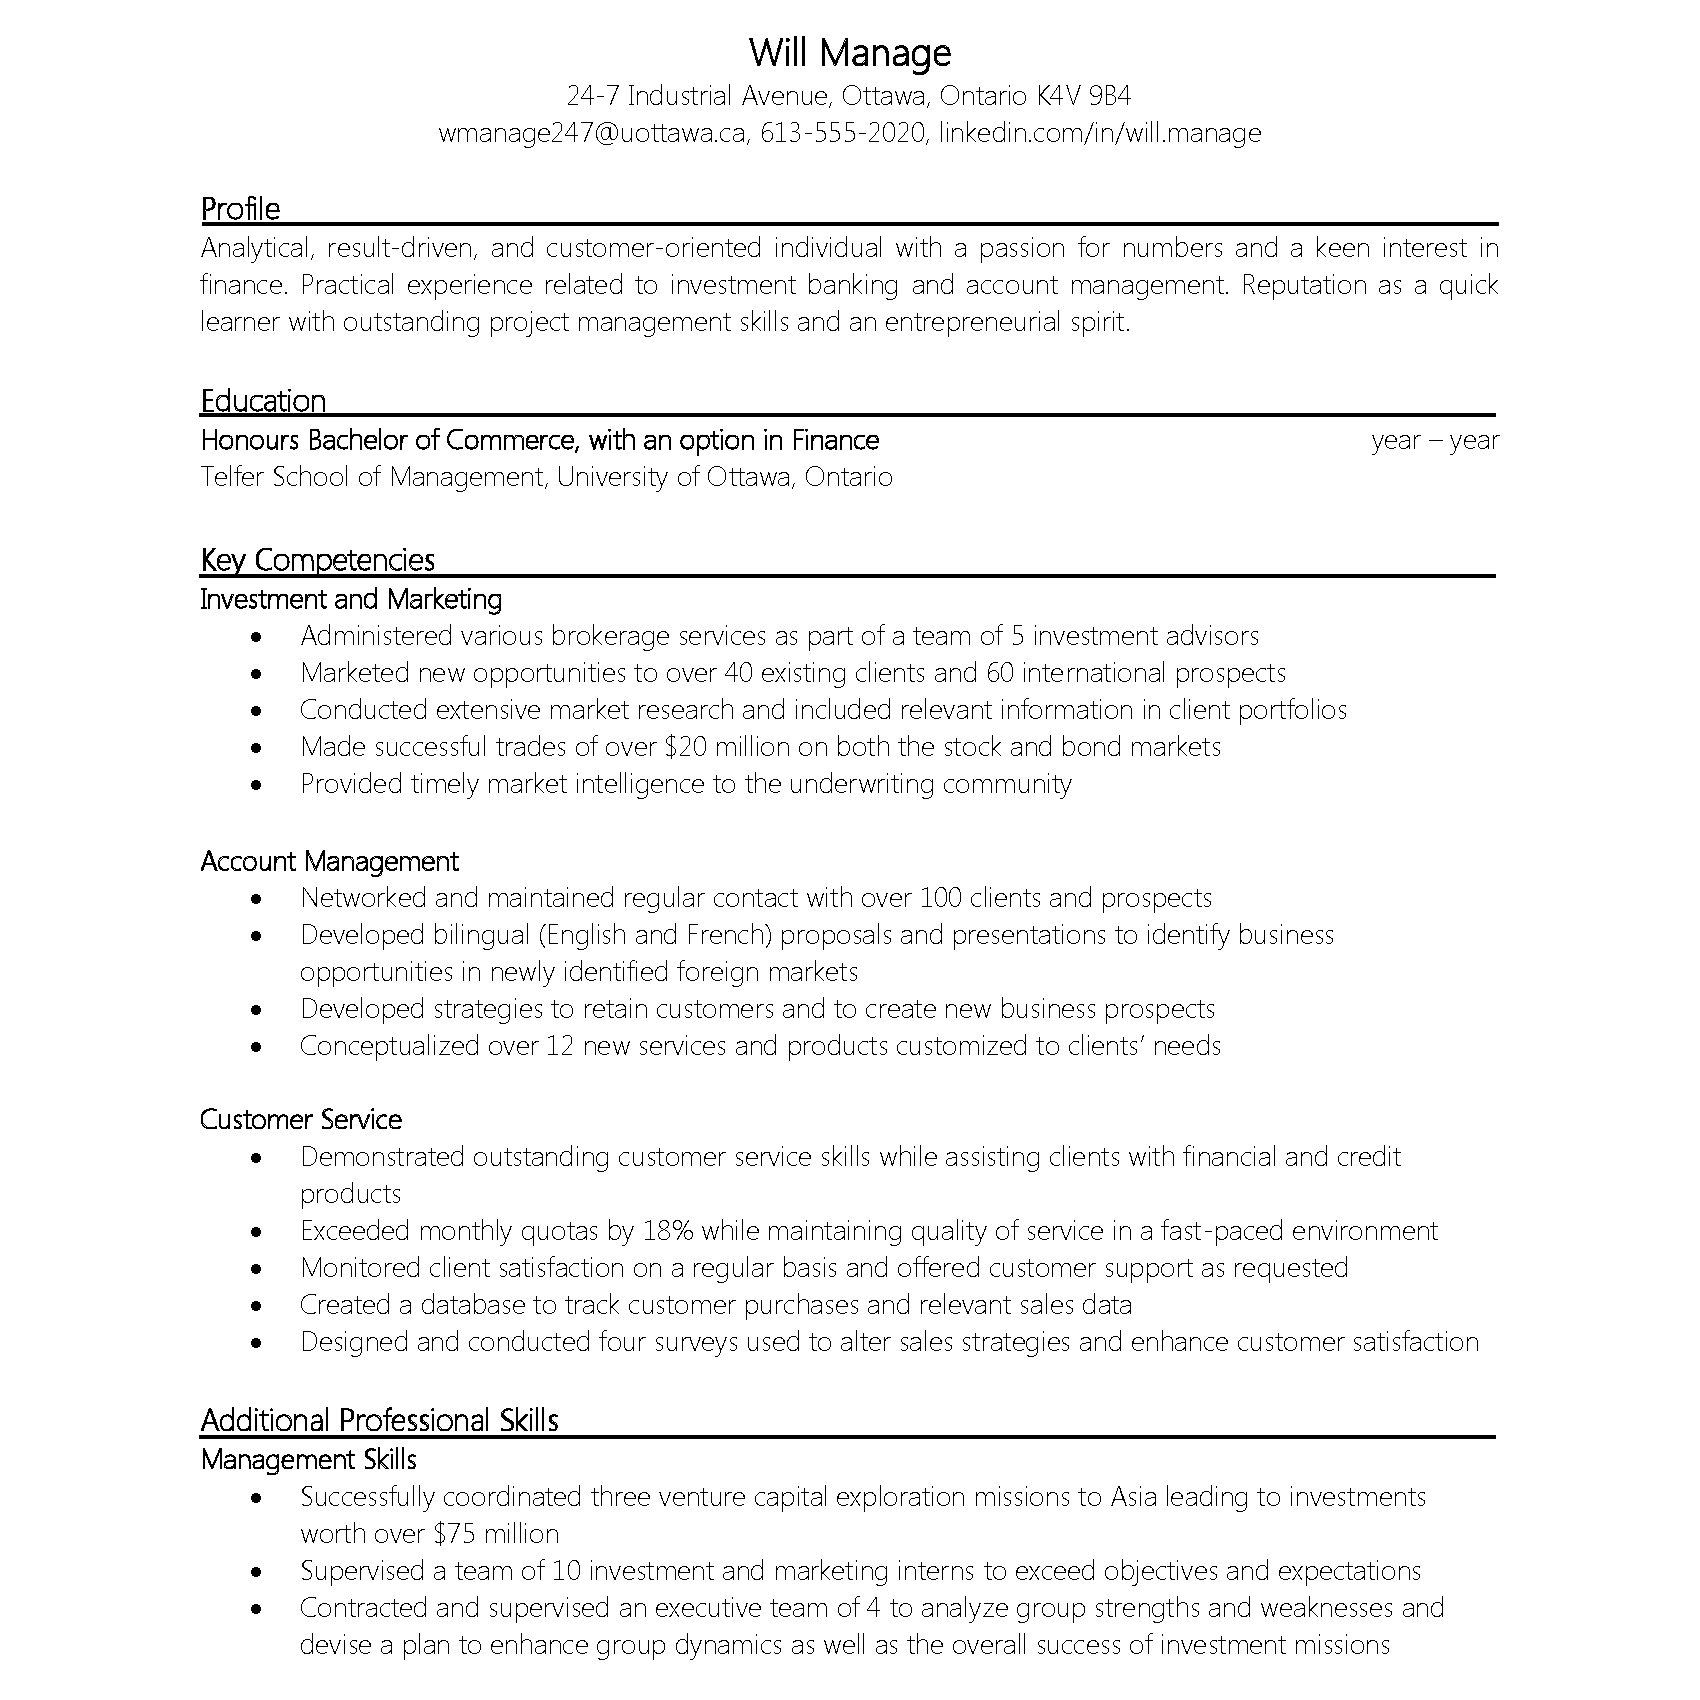 Functional Resumé Example